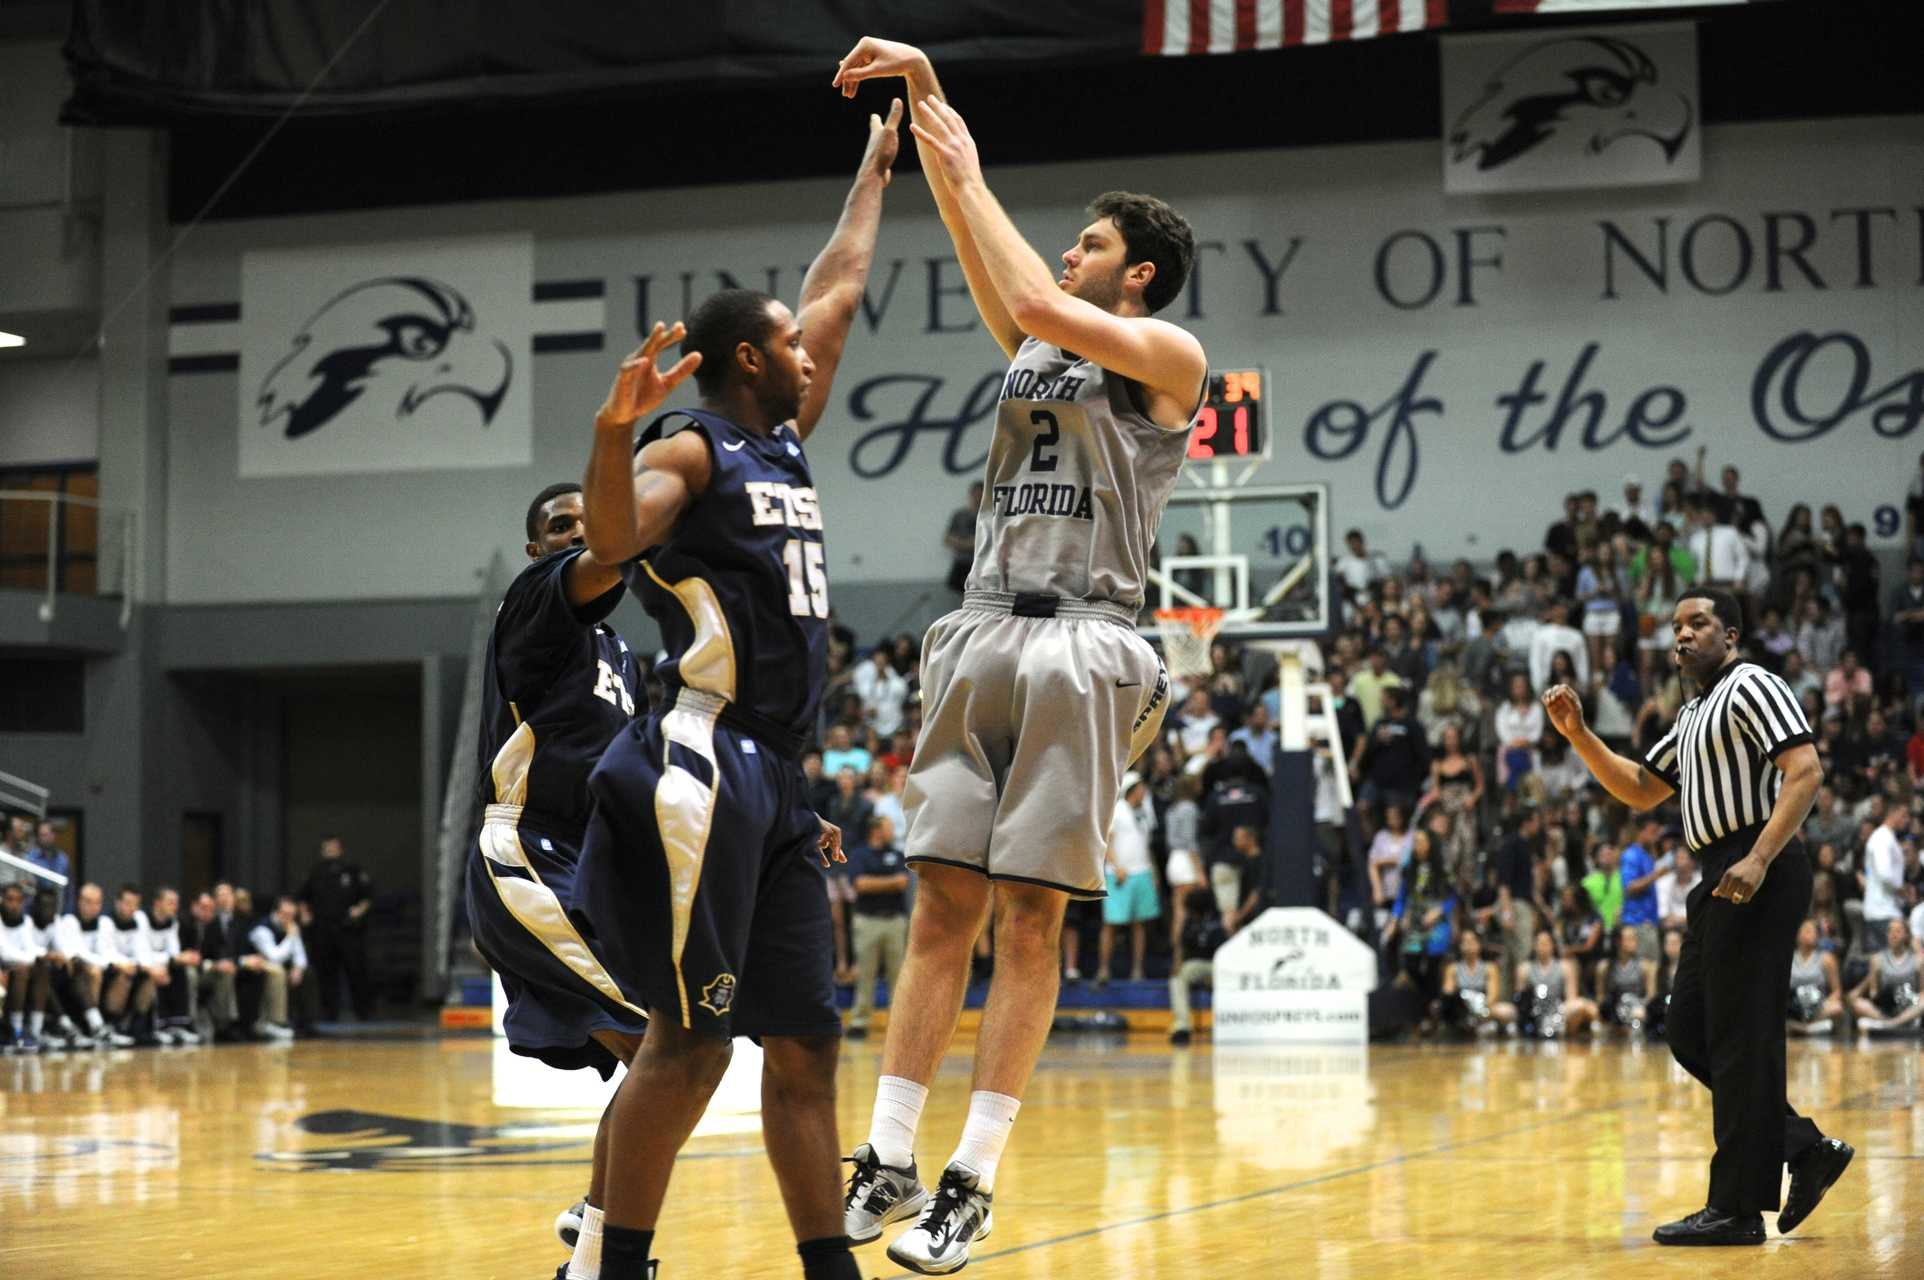 Beau Beech attempts a three with an ETSU defender's hand in his line of view. Photo by John Shippee